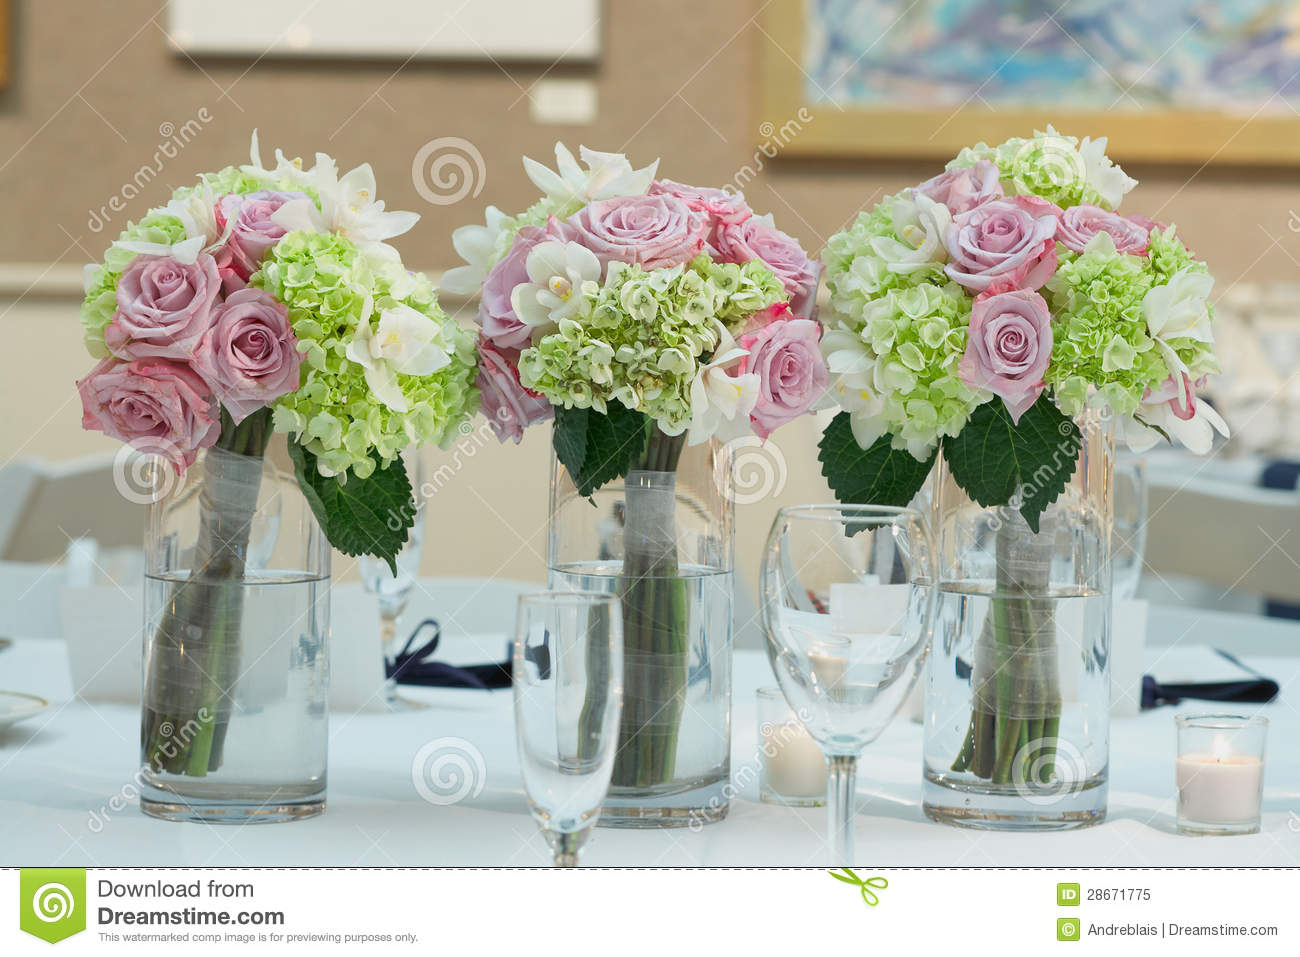 Wedding Bouquet Centerpieces Royalty Free Stock Photo